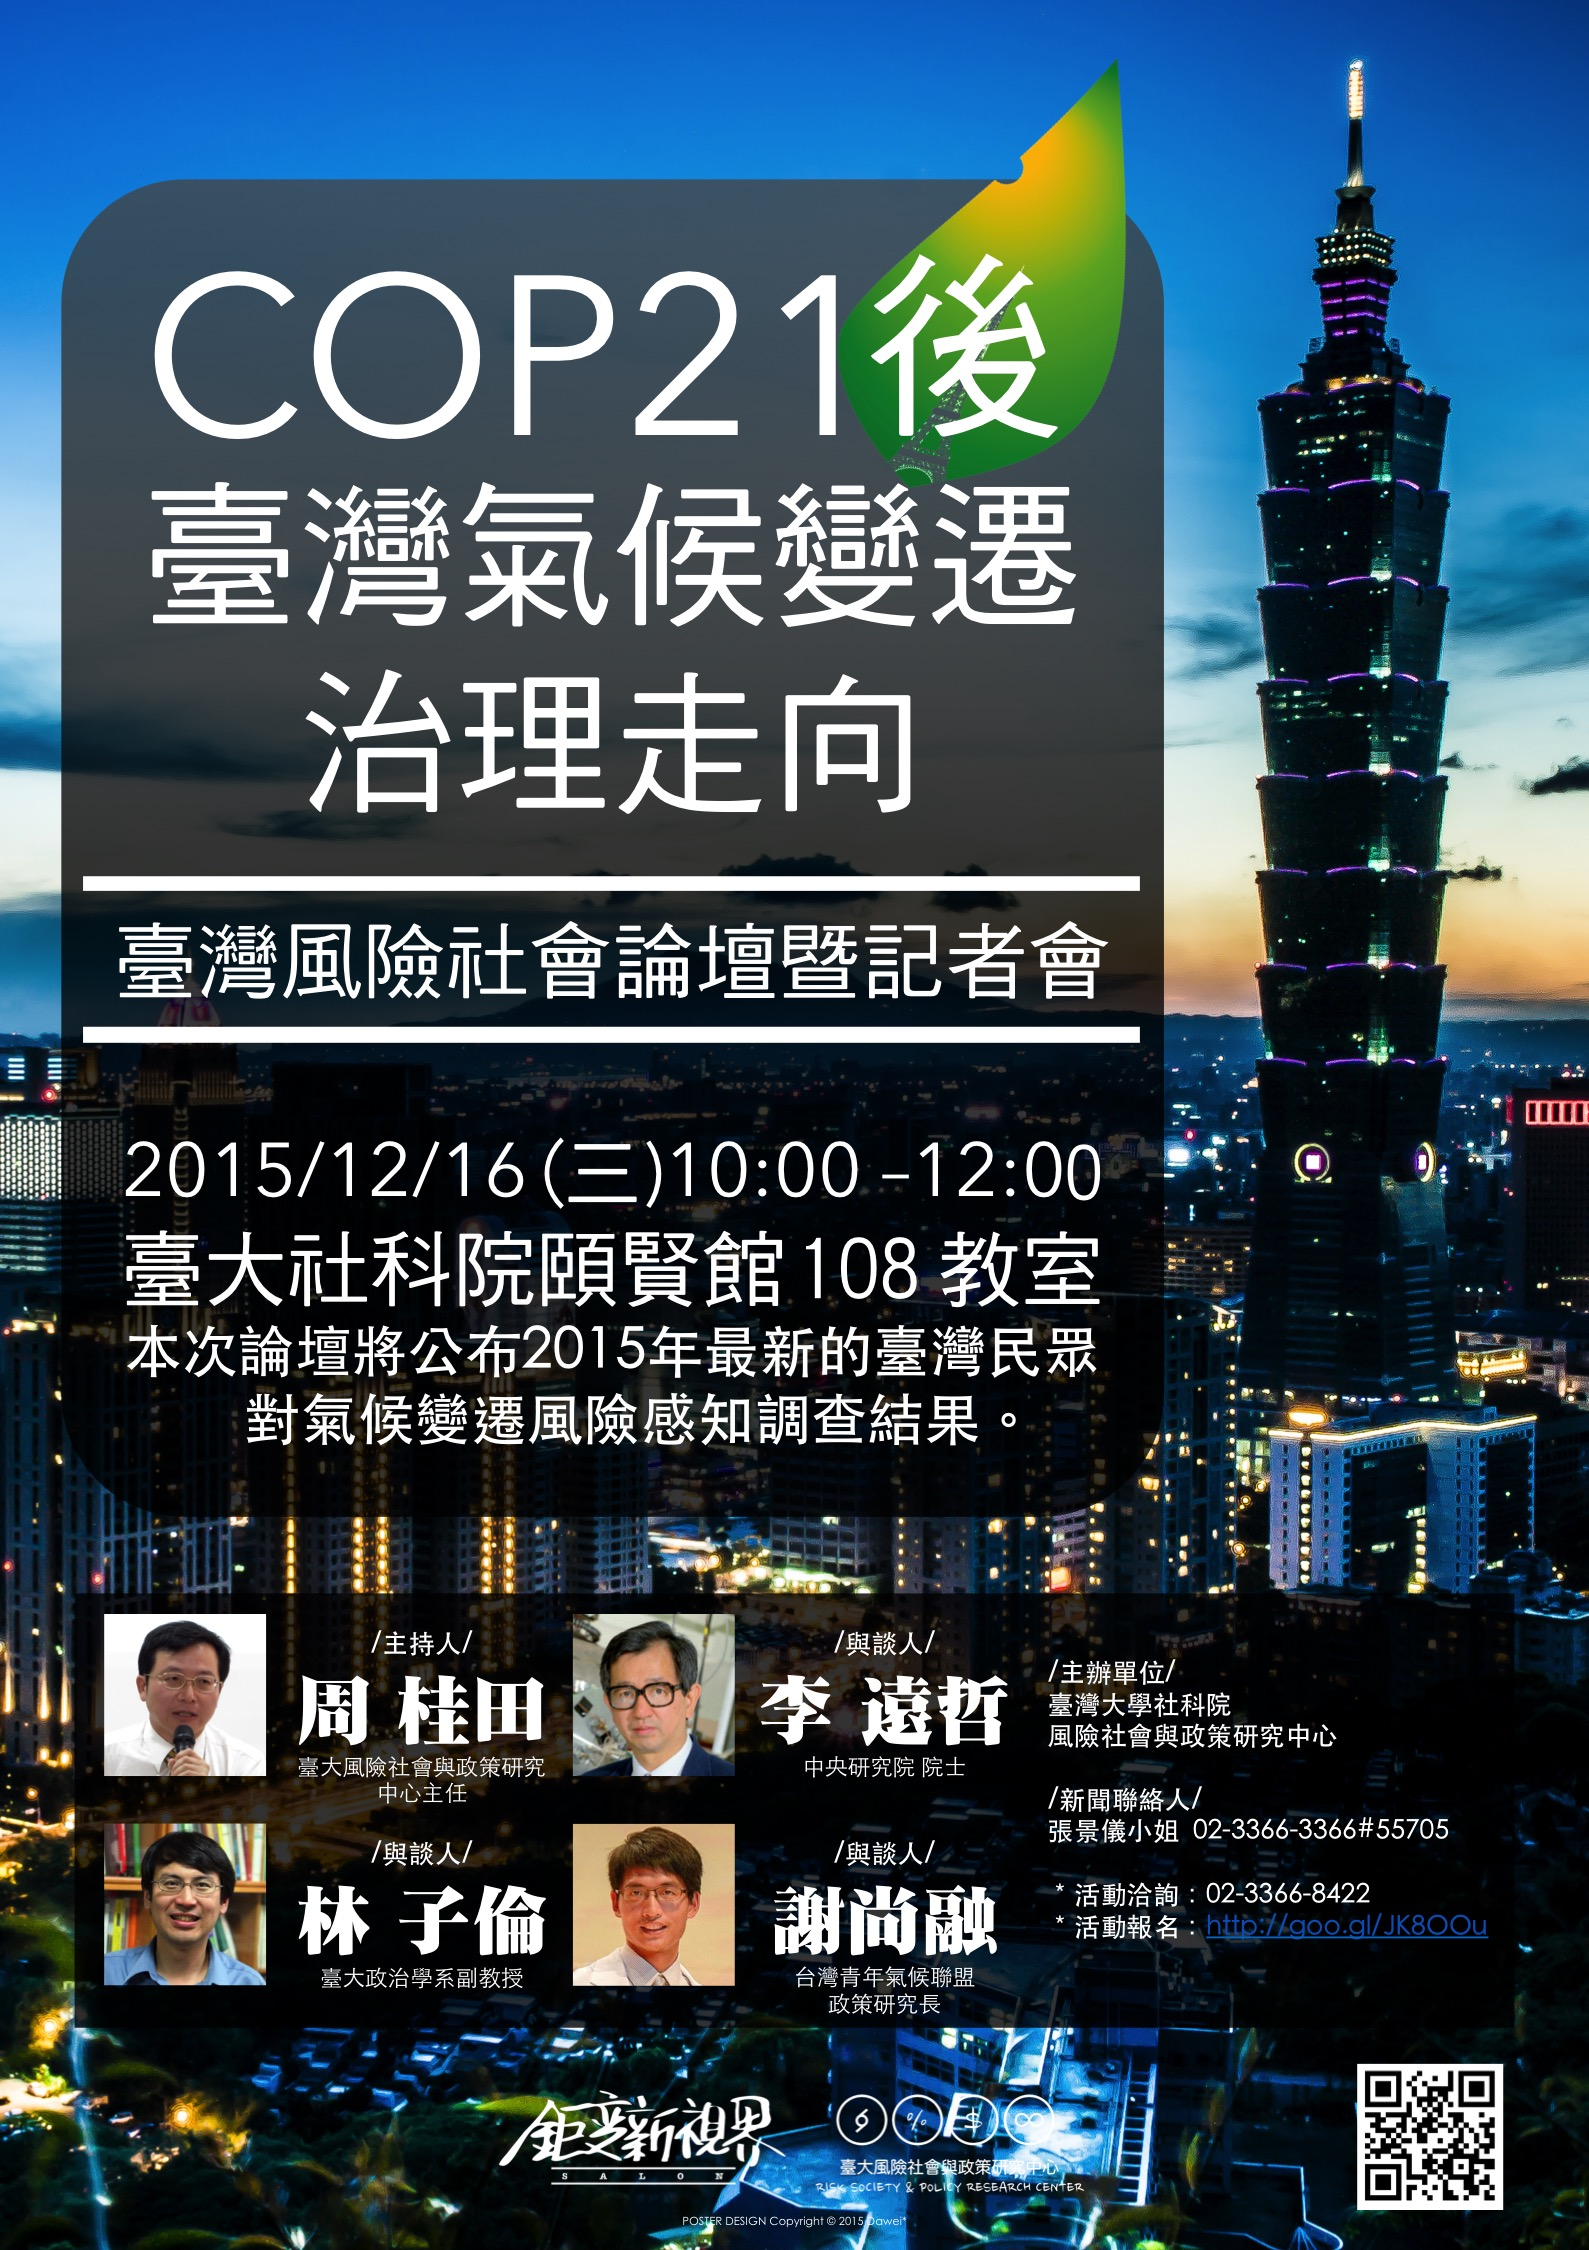 20151204 aftercop21 v7